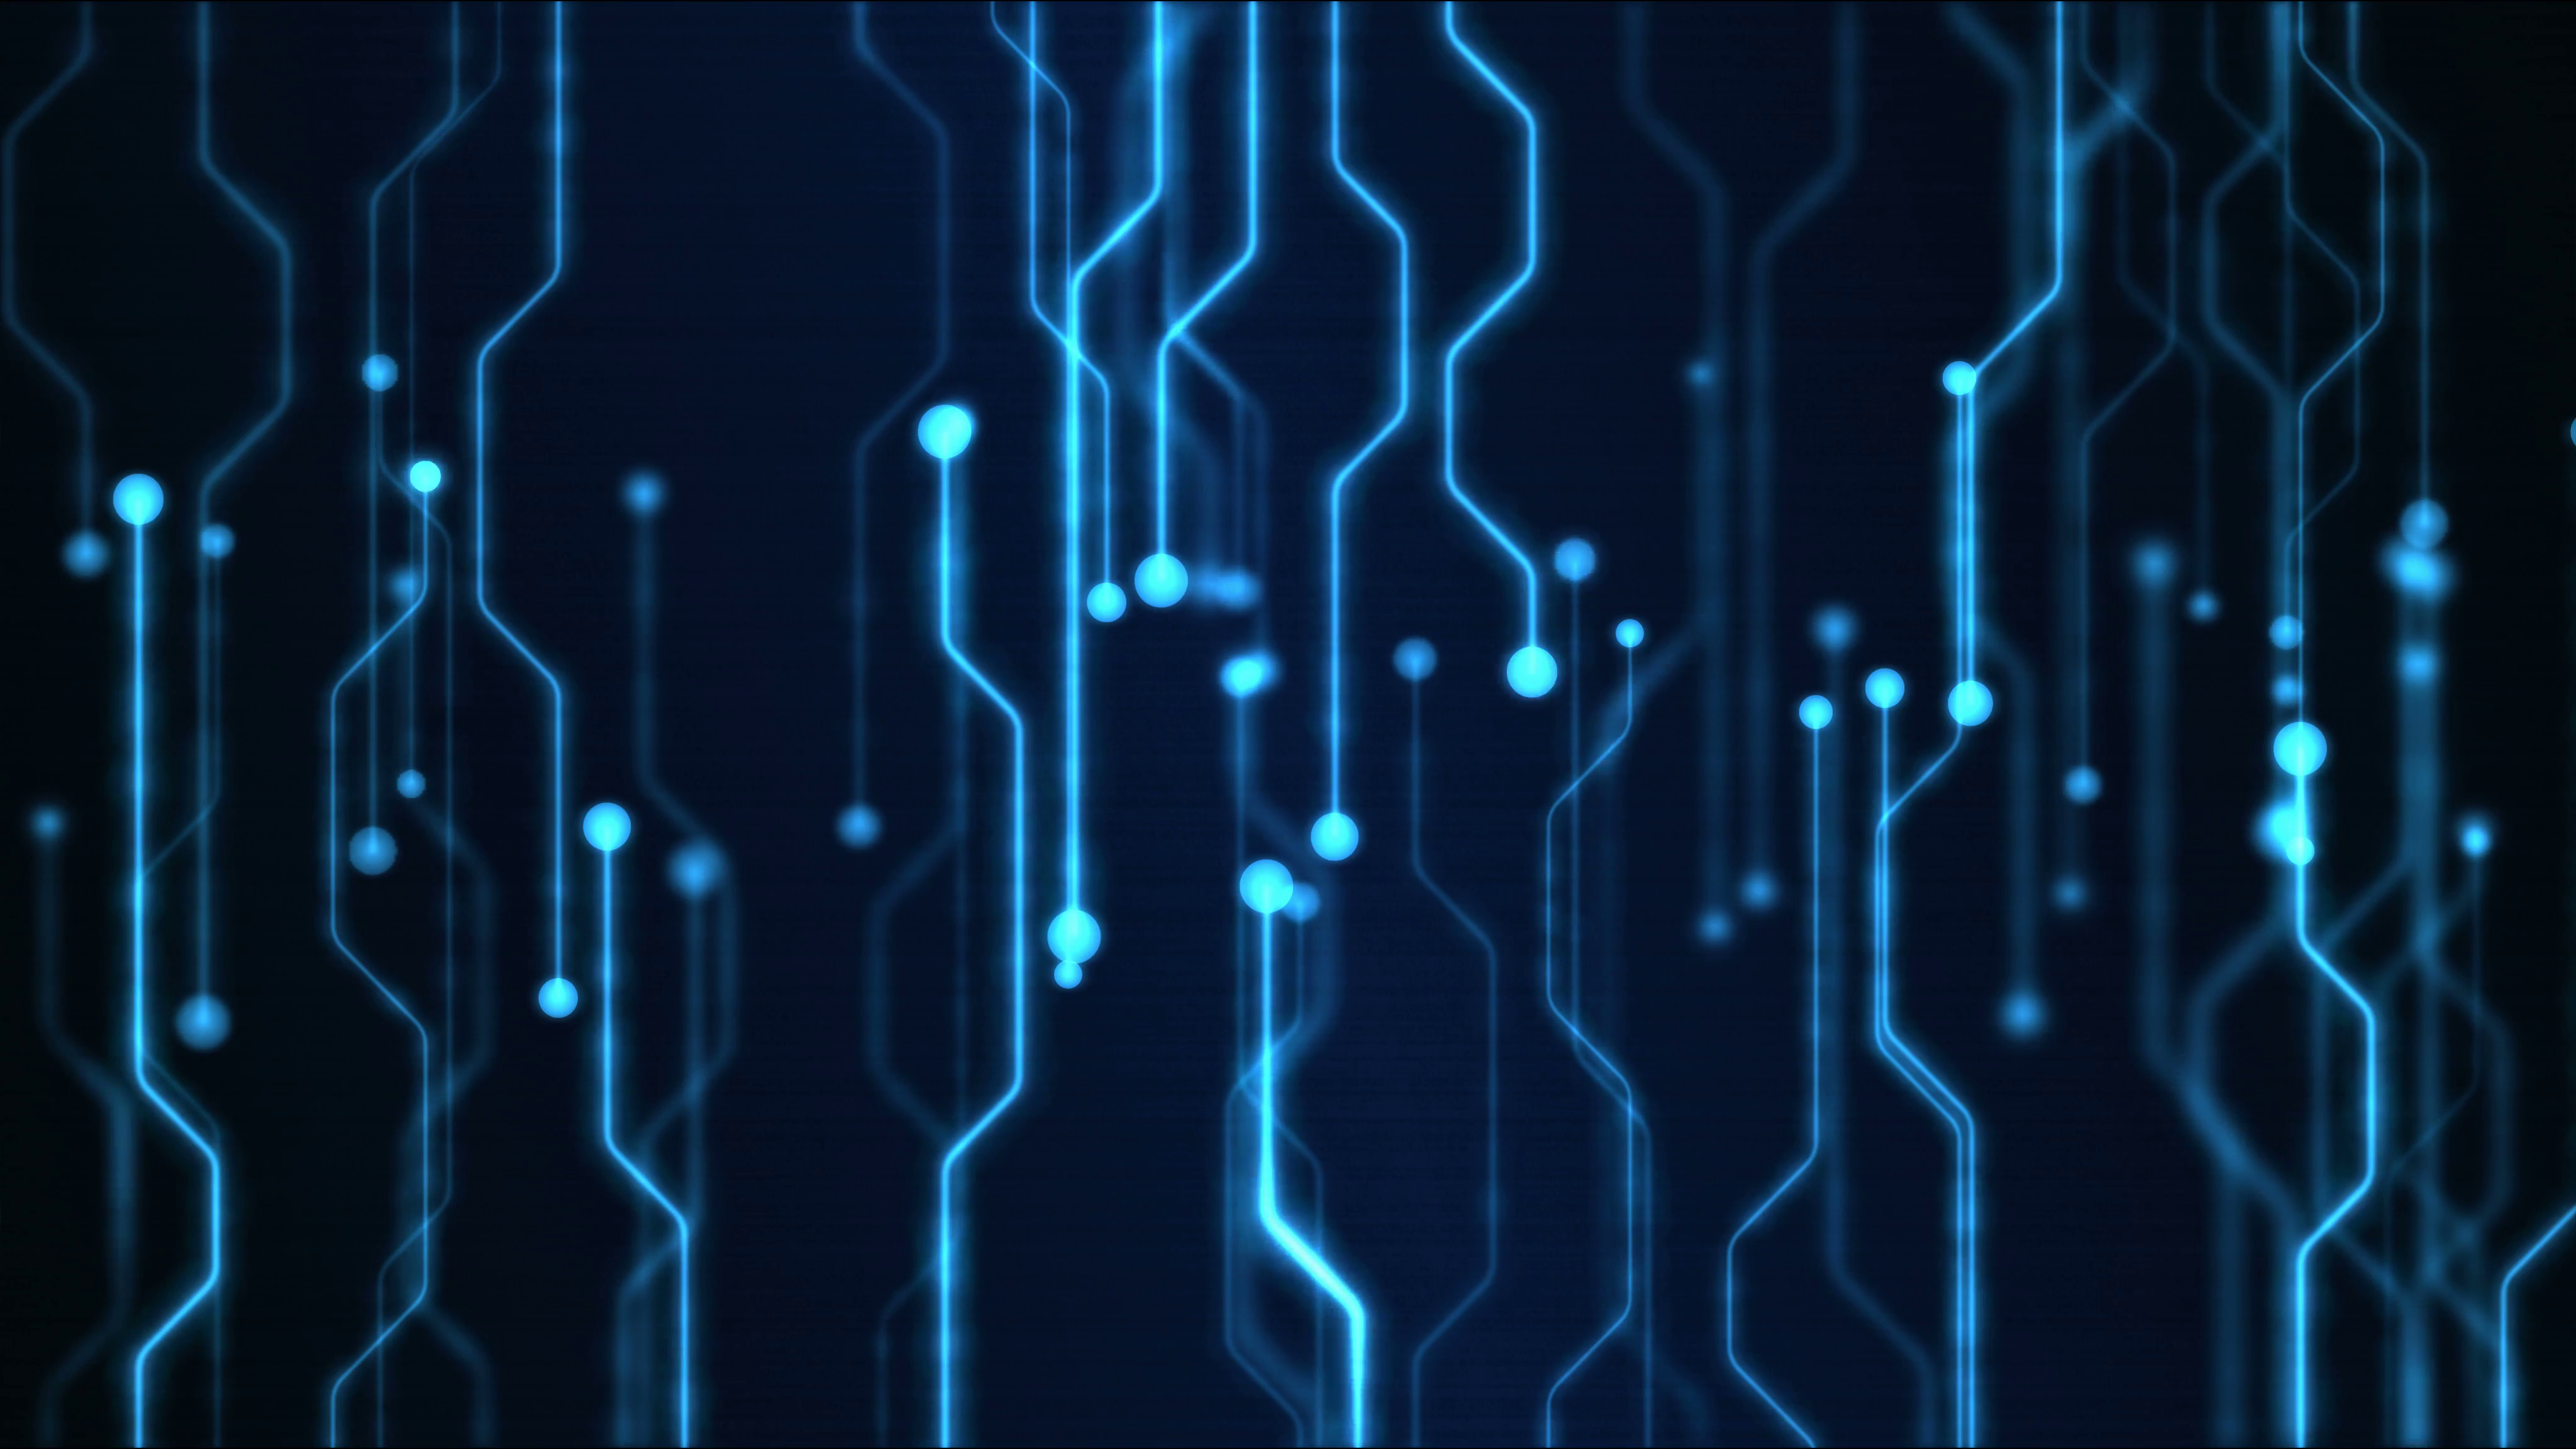 abstract technology circuit background animation loop blue vk7hwaex8